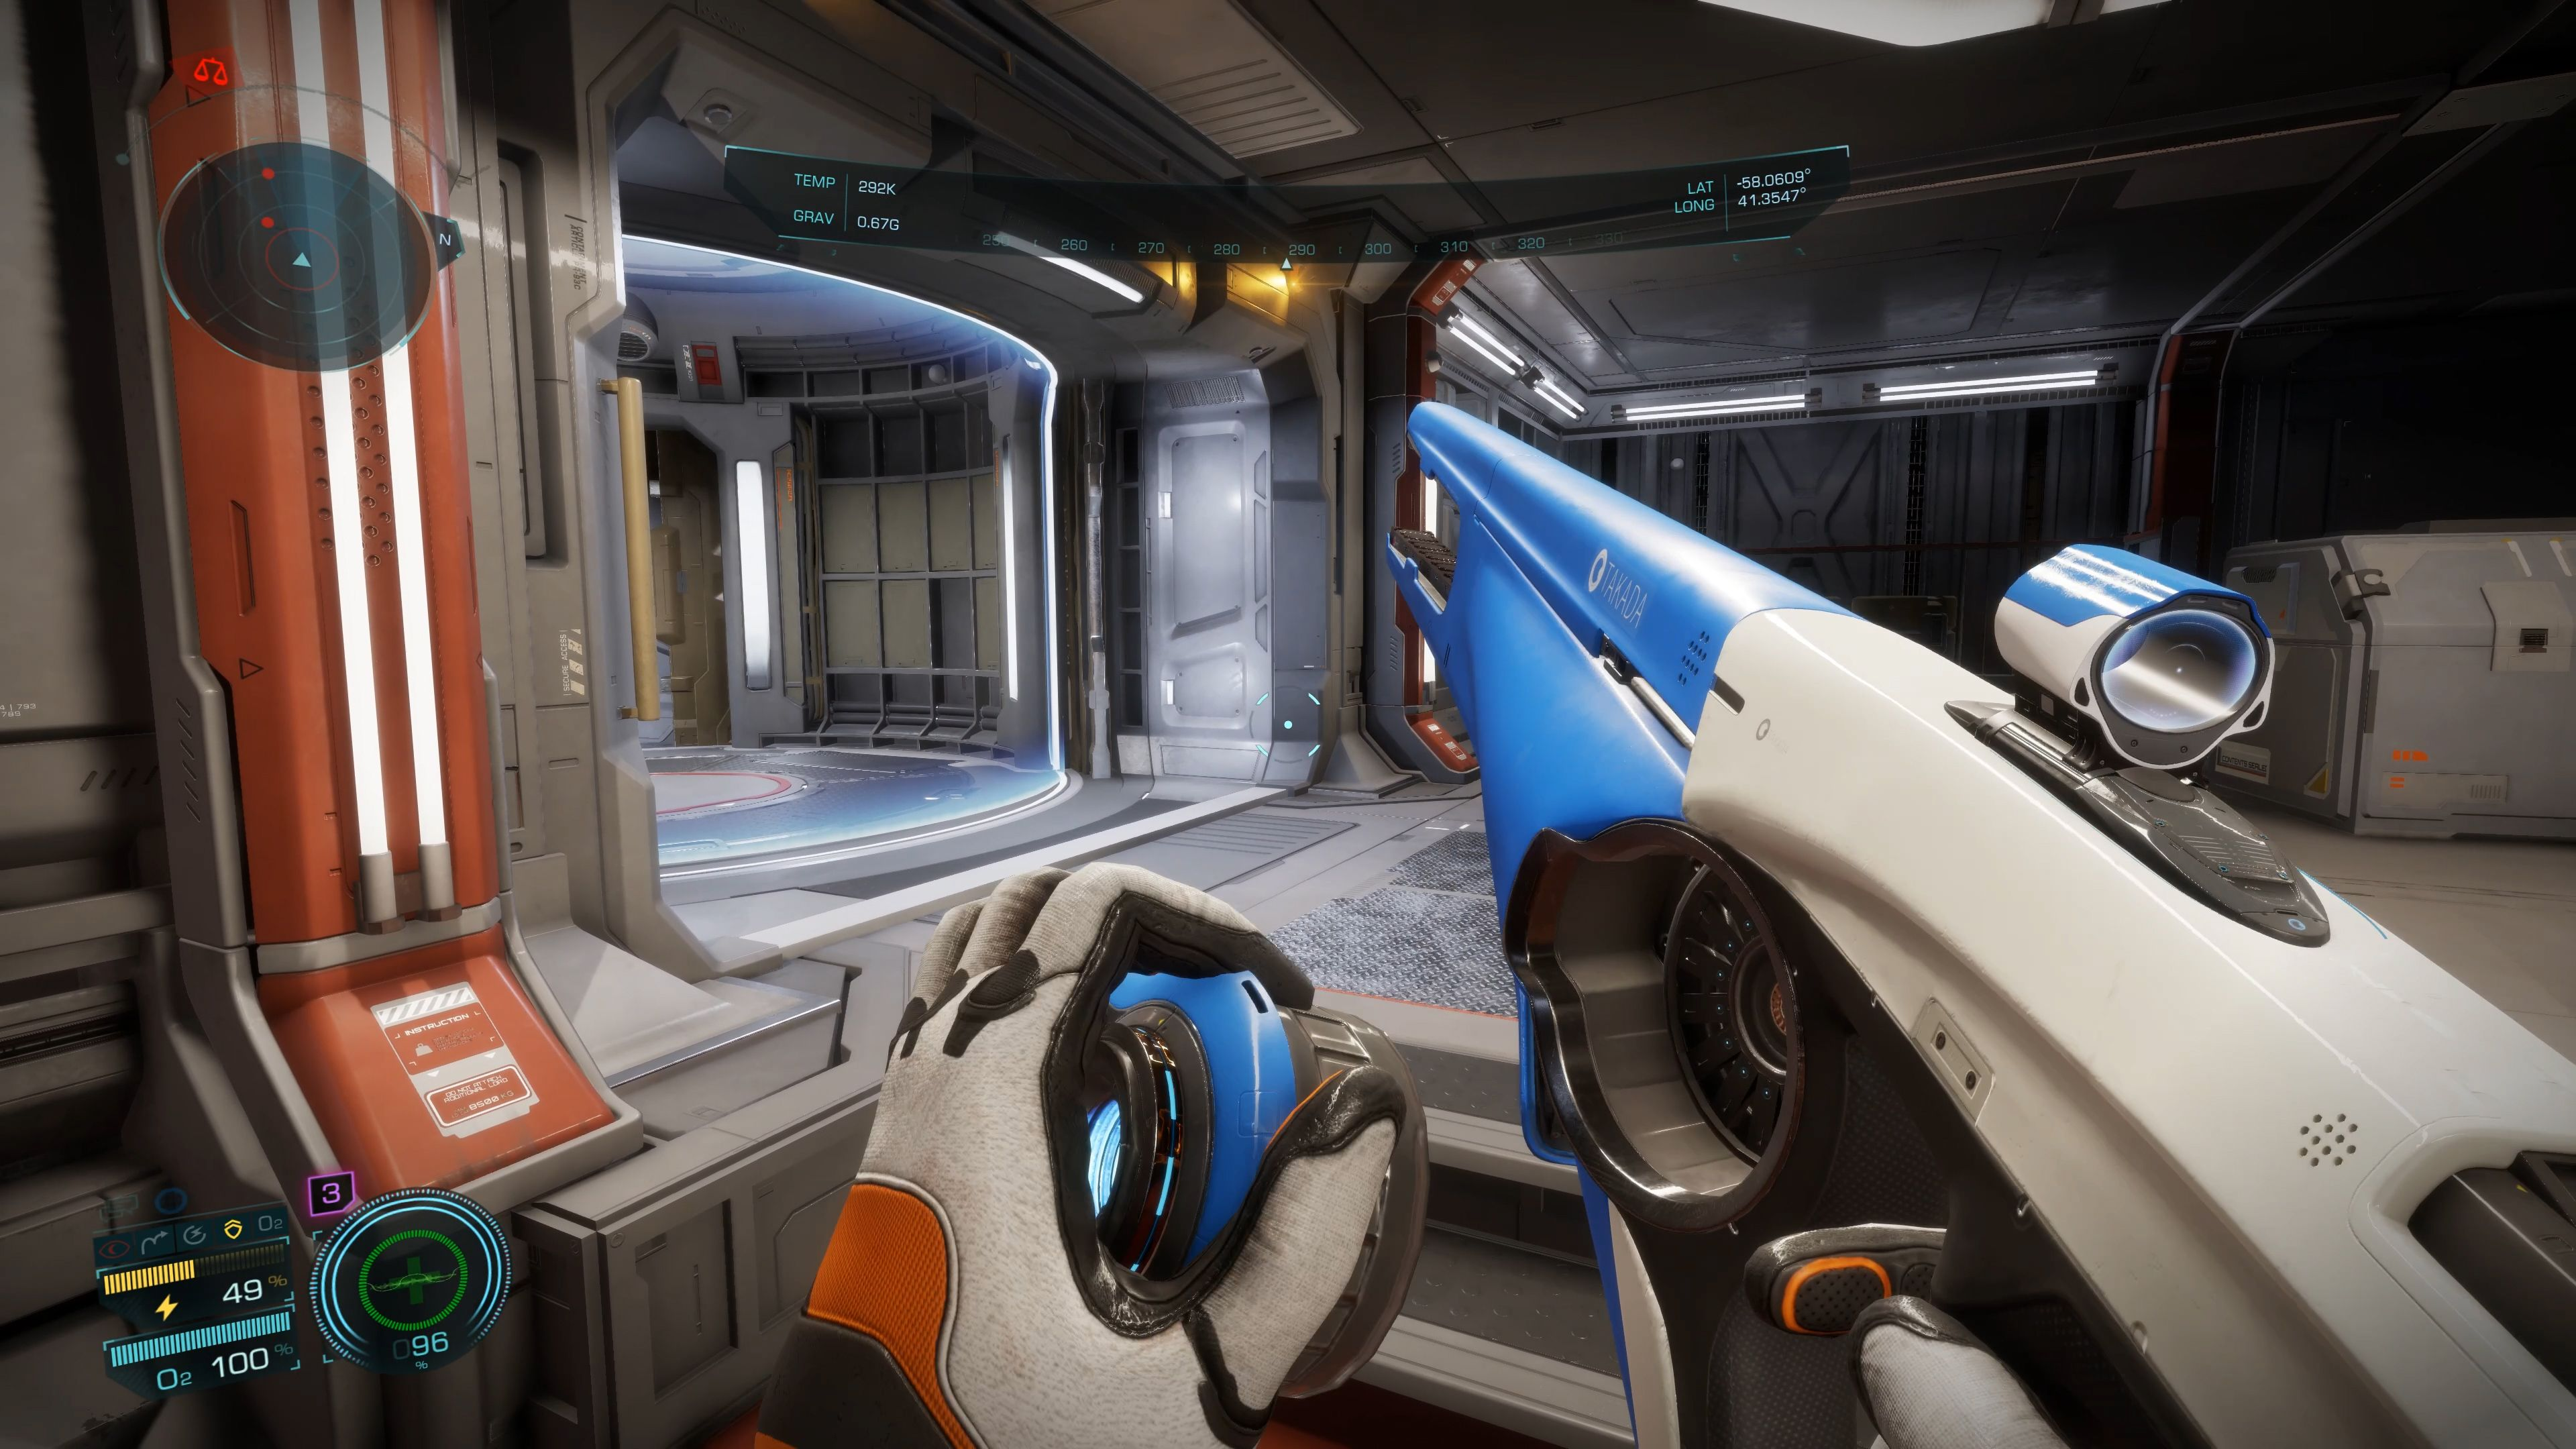 At long last, here is Elite Dangerous: Odyssey's first-person gameplay in action